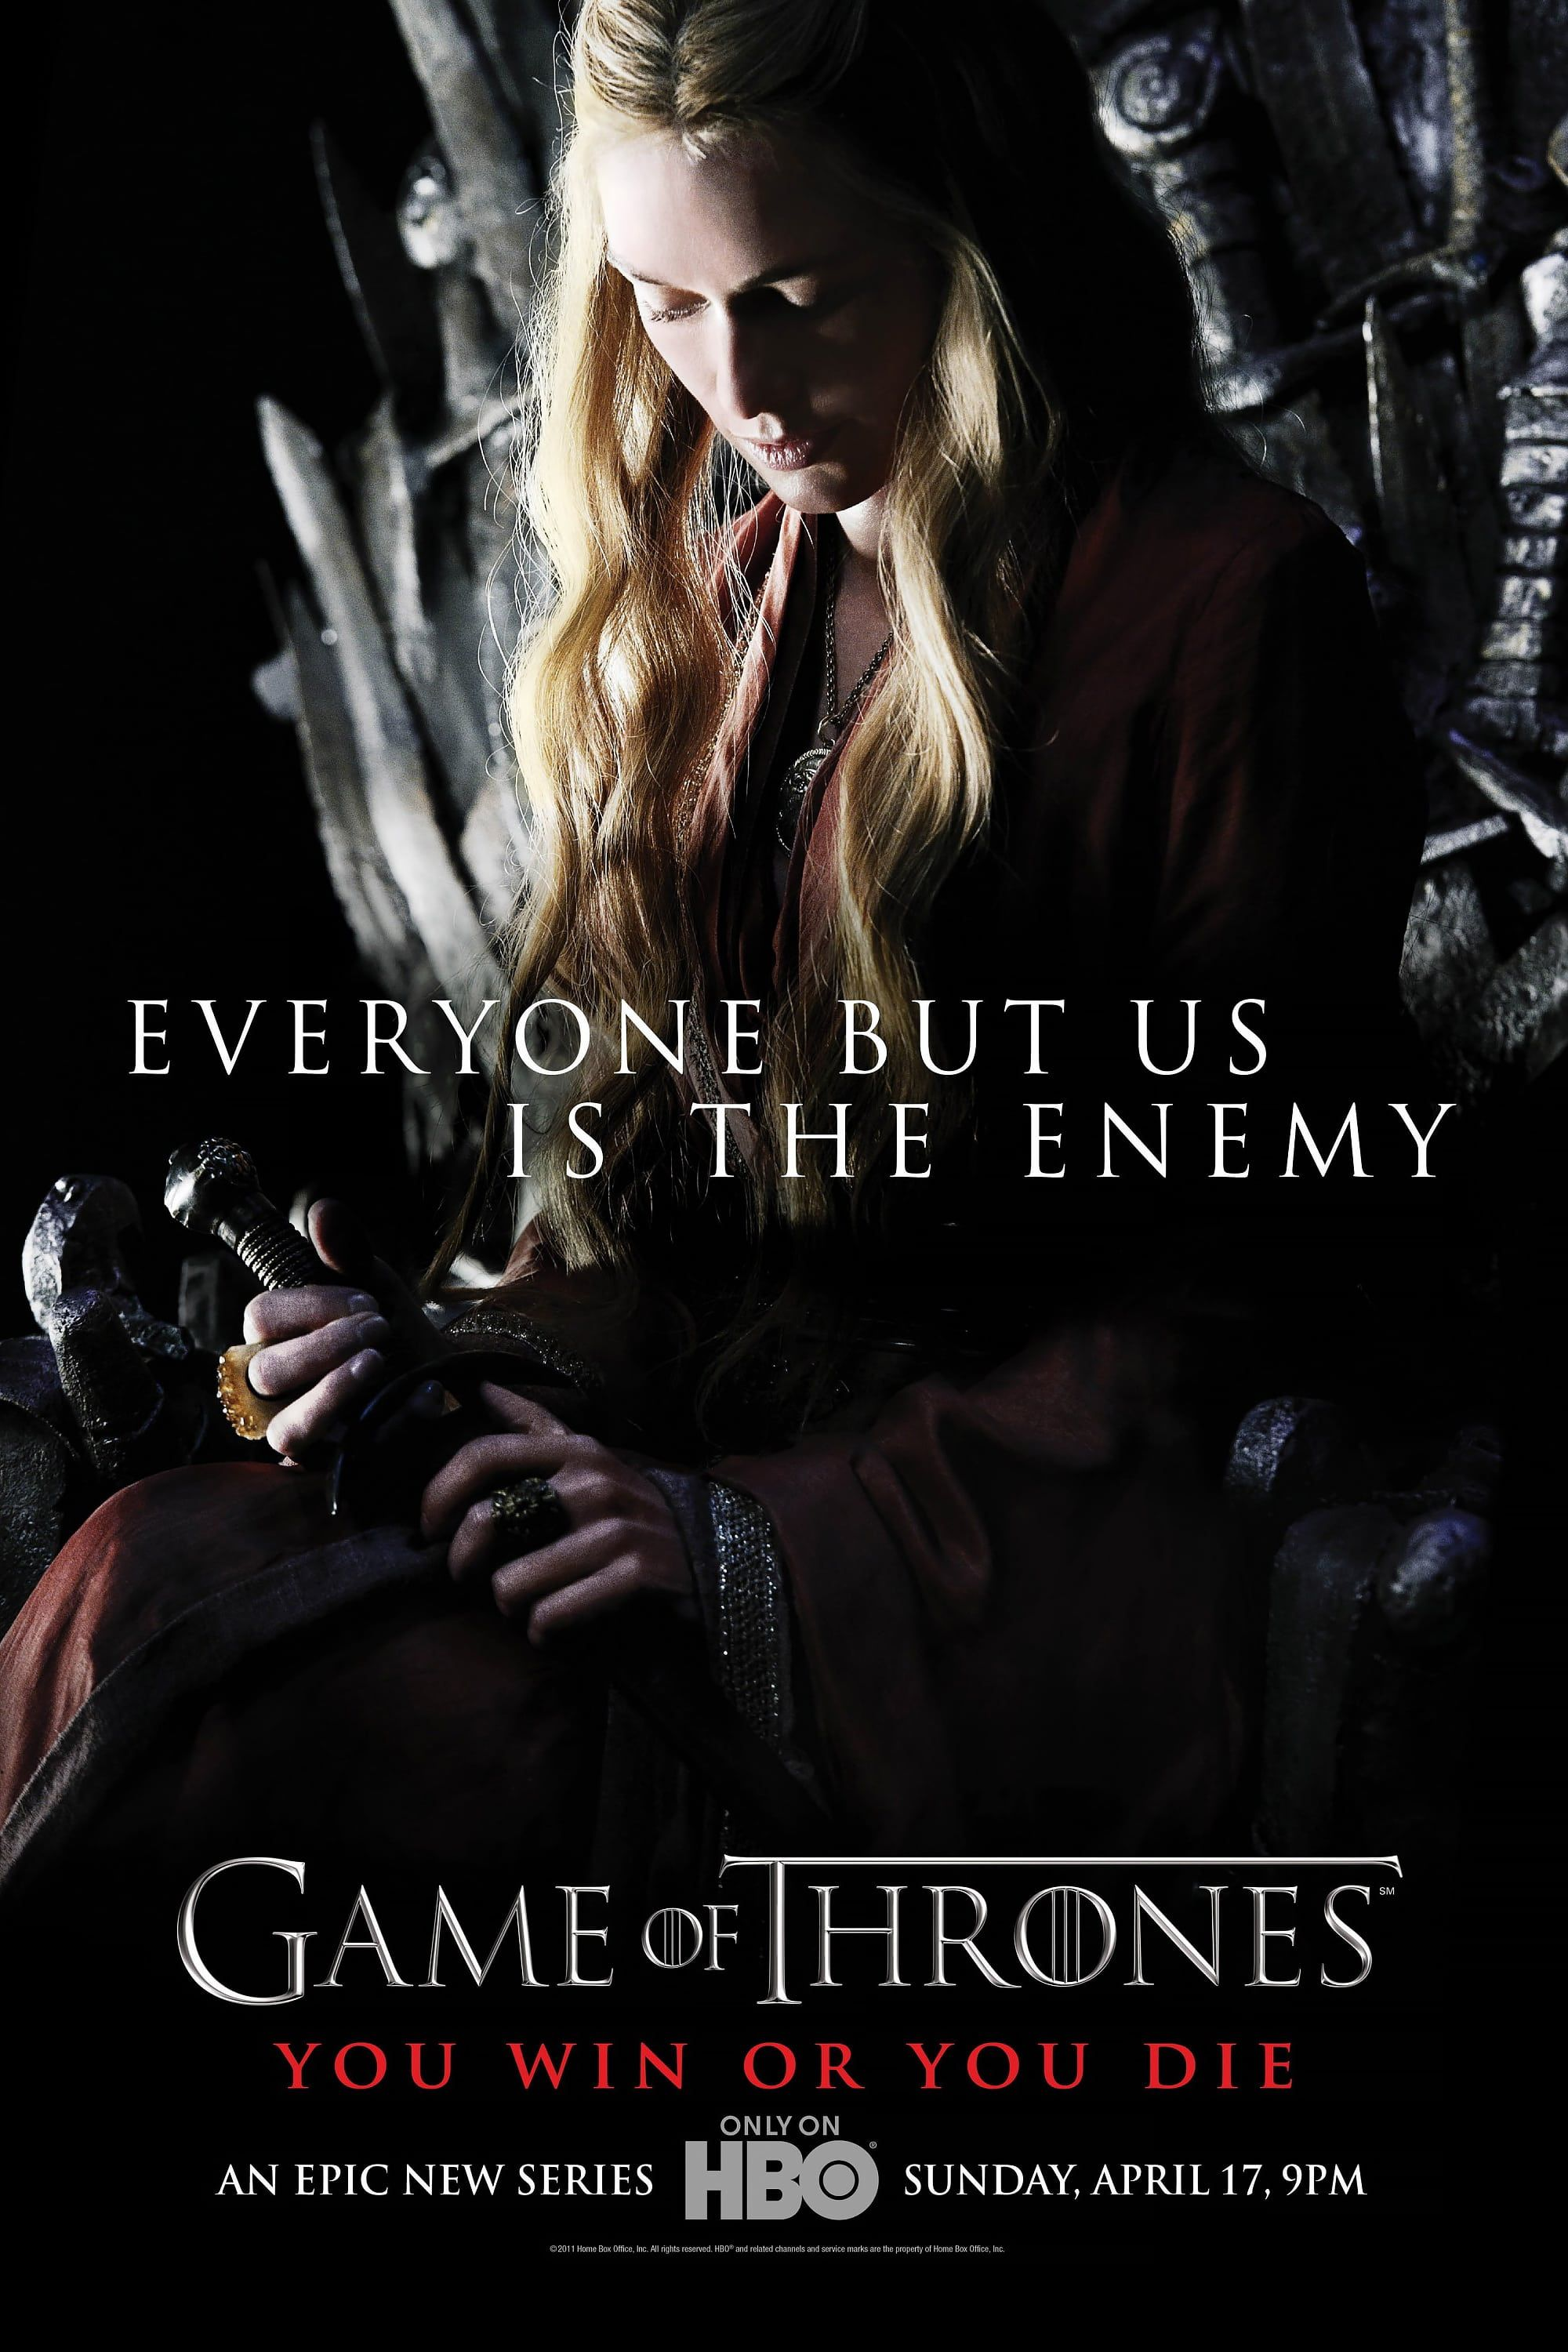 Ver Hd Juego De Tronos Temporada 8 Online Latino Blogspot Series Tvyseries Topseries Game Of Thrones Poster Watch Game Of Thrones Cersei Lannister